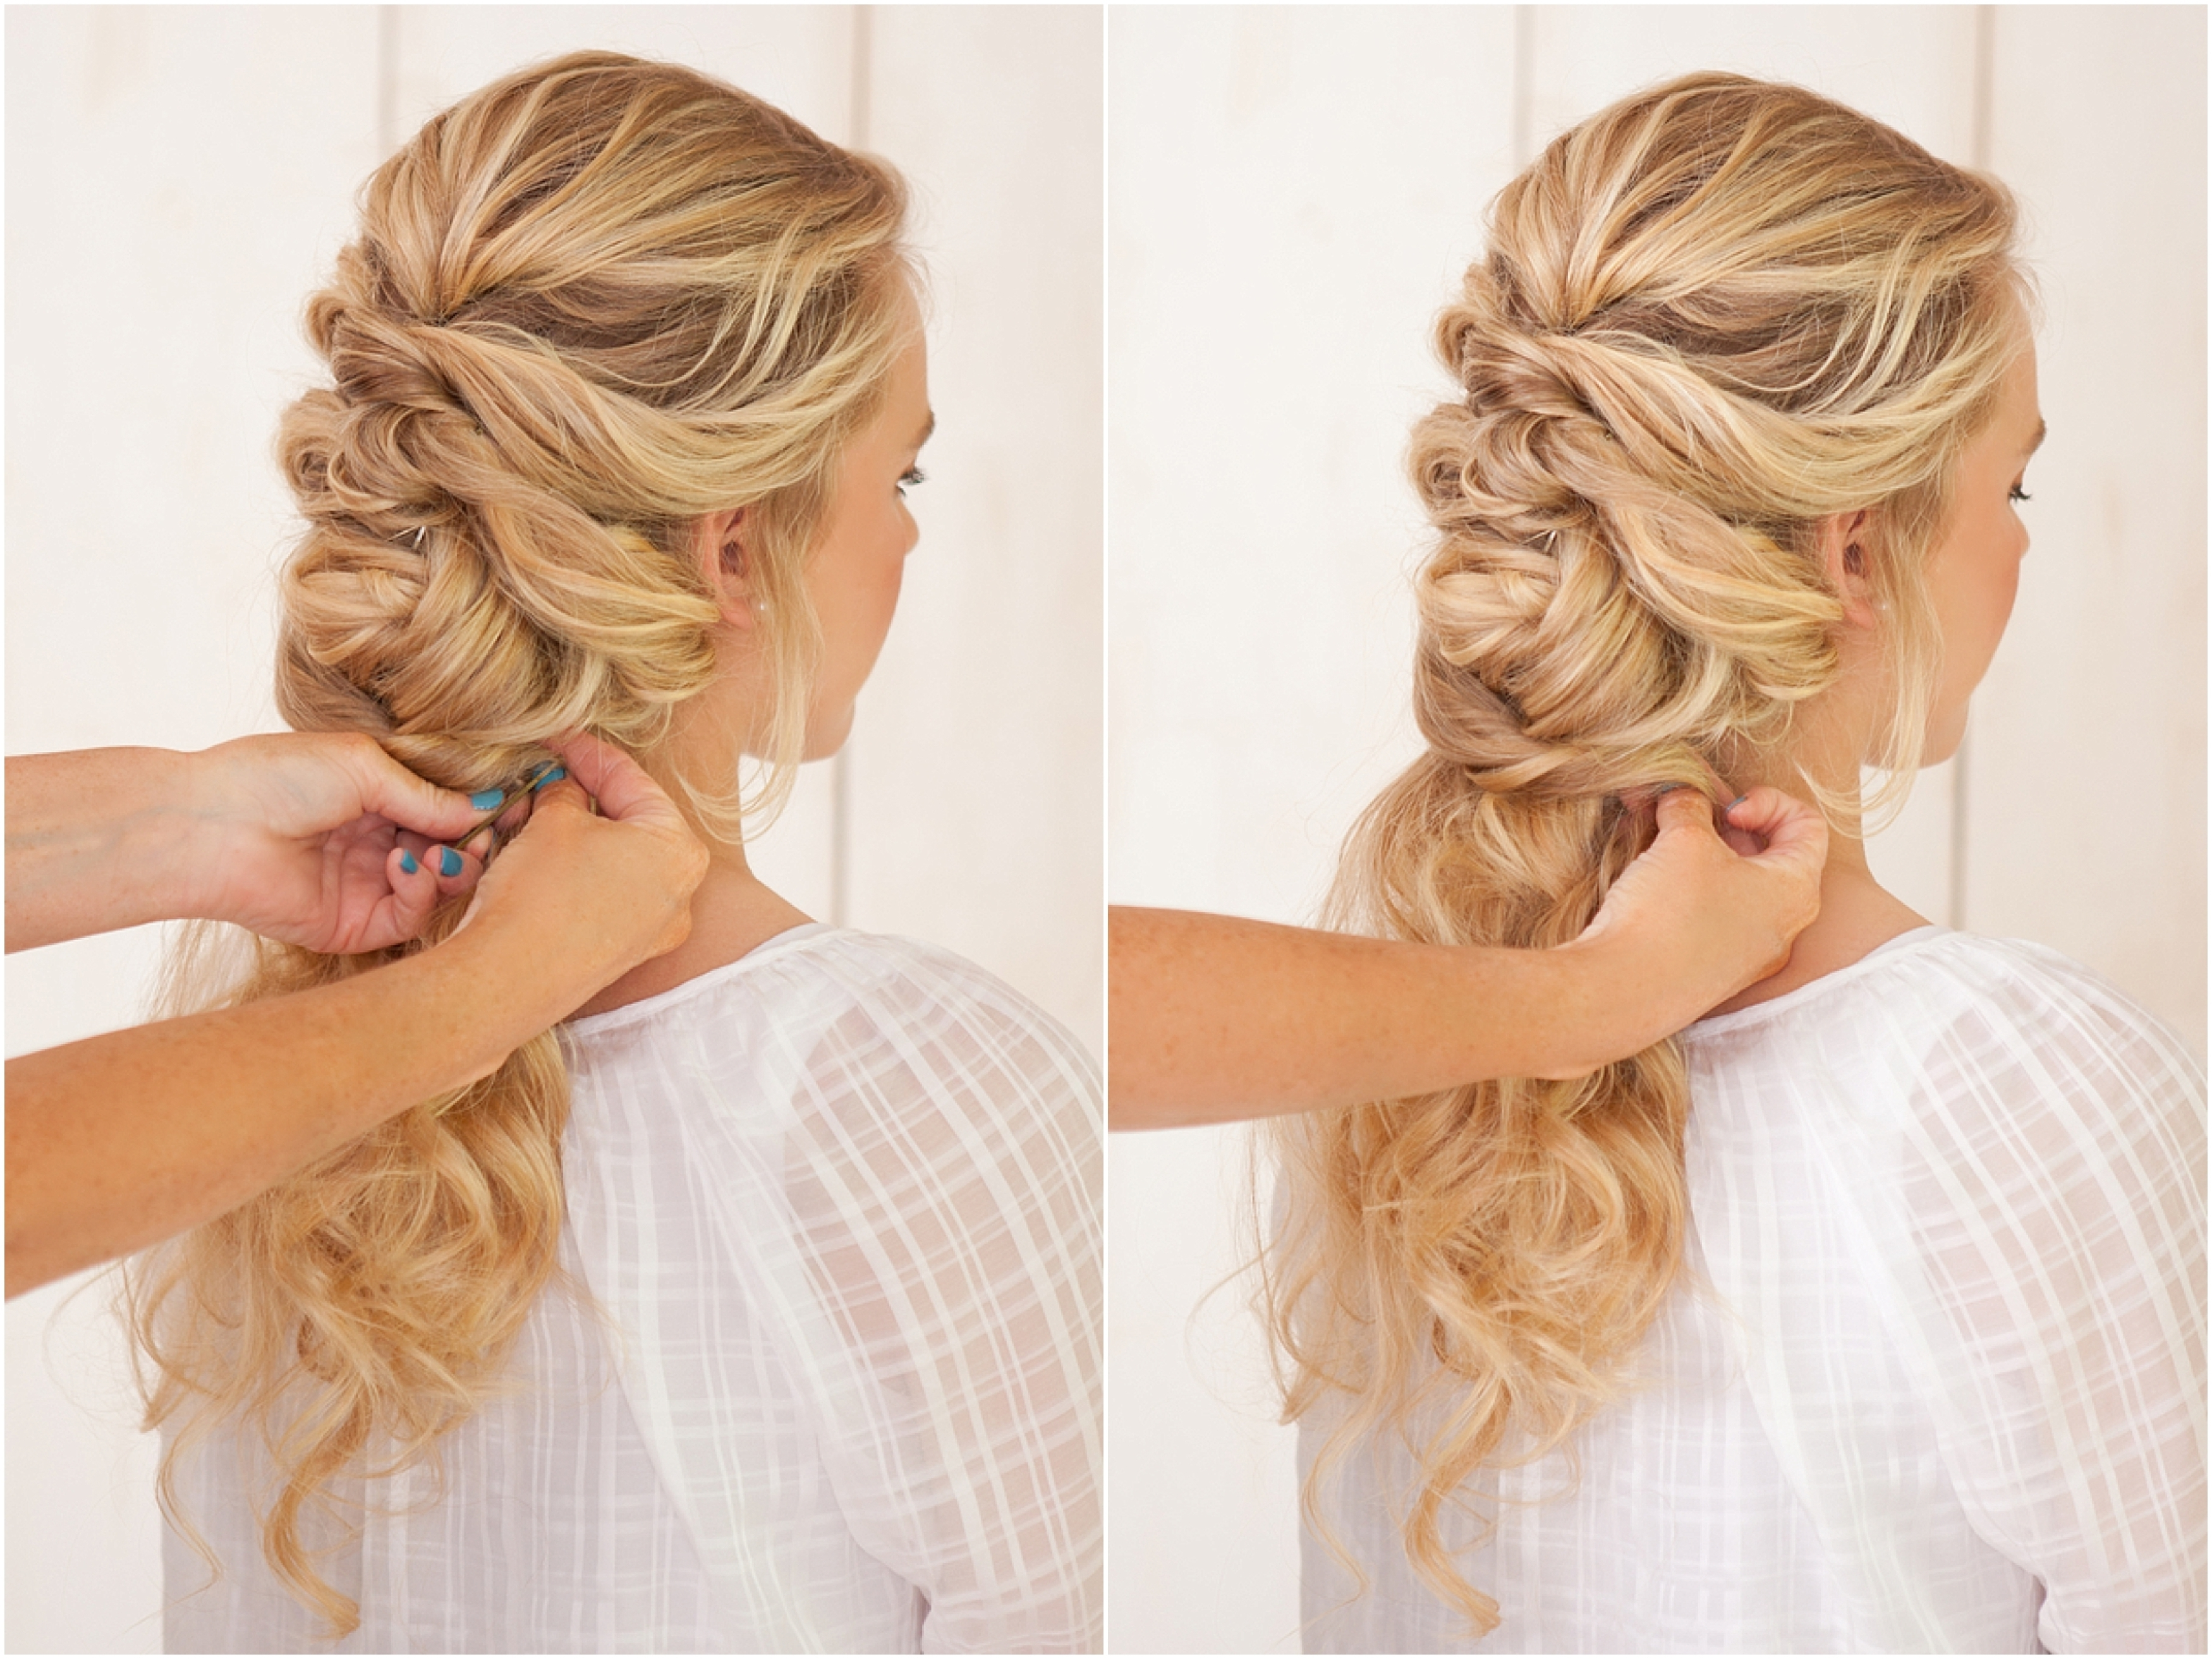 French Roll Hairstyle For Wedding French Braid Wedding Hairstyle The Within Fashionable Roll Hairstyles For Wedding (View 7 of 15)